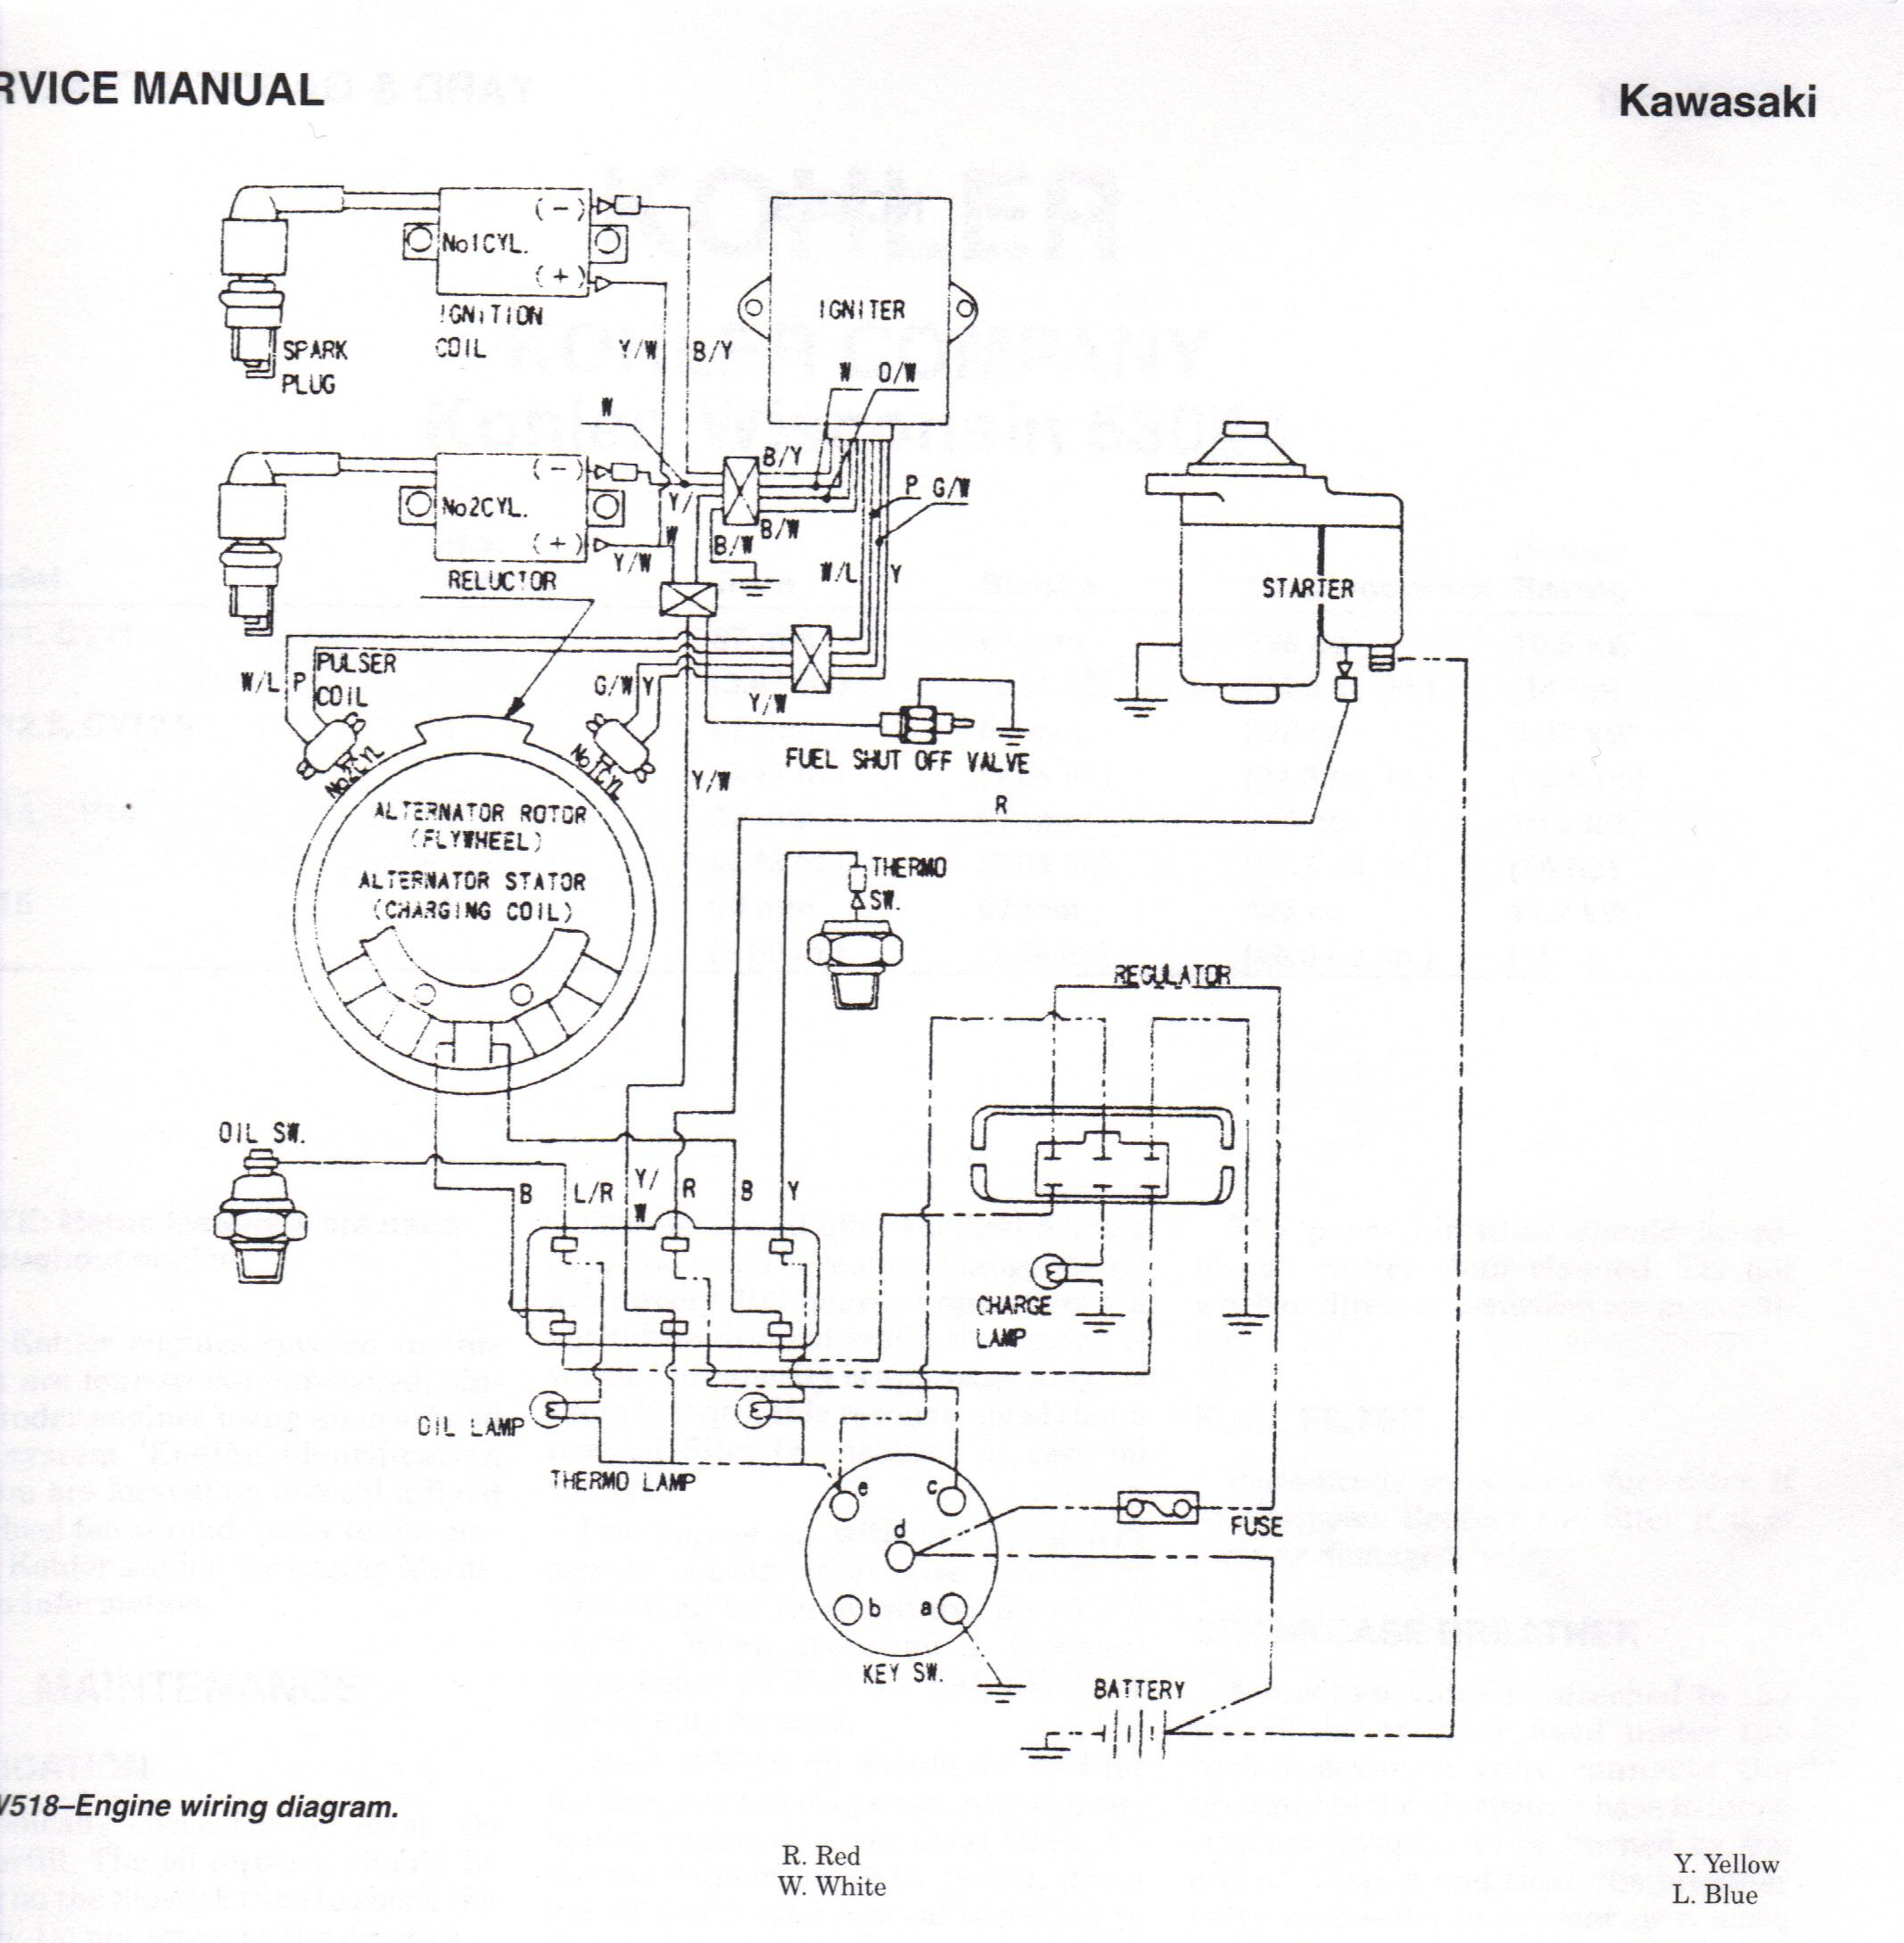 kubota wiring diagram wiring diagram and schematic design collection kubota d902 wiring diagrams pictures wire diagram